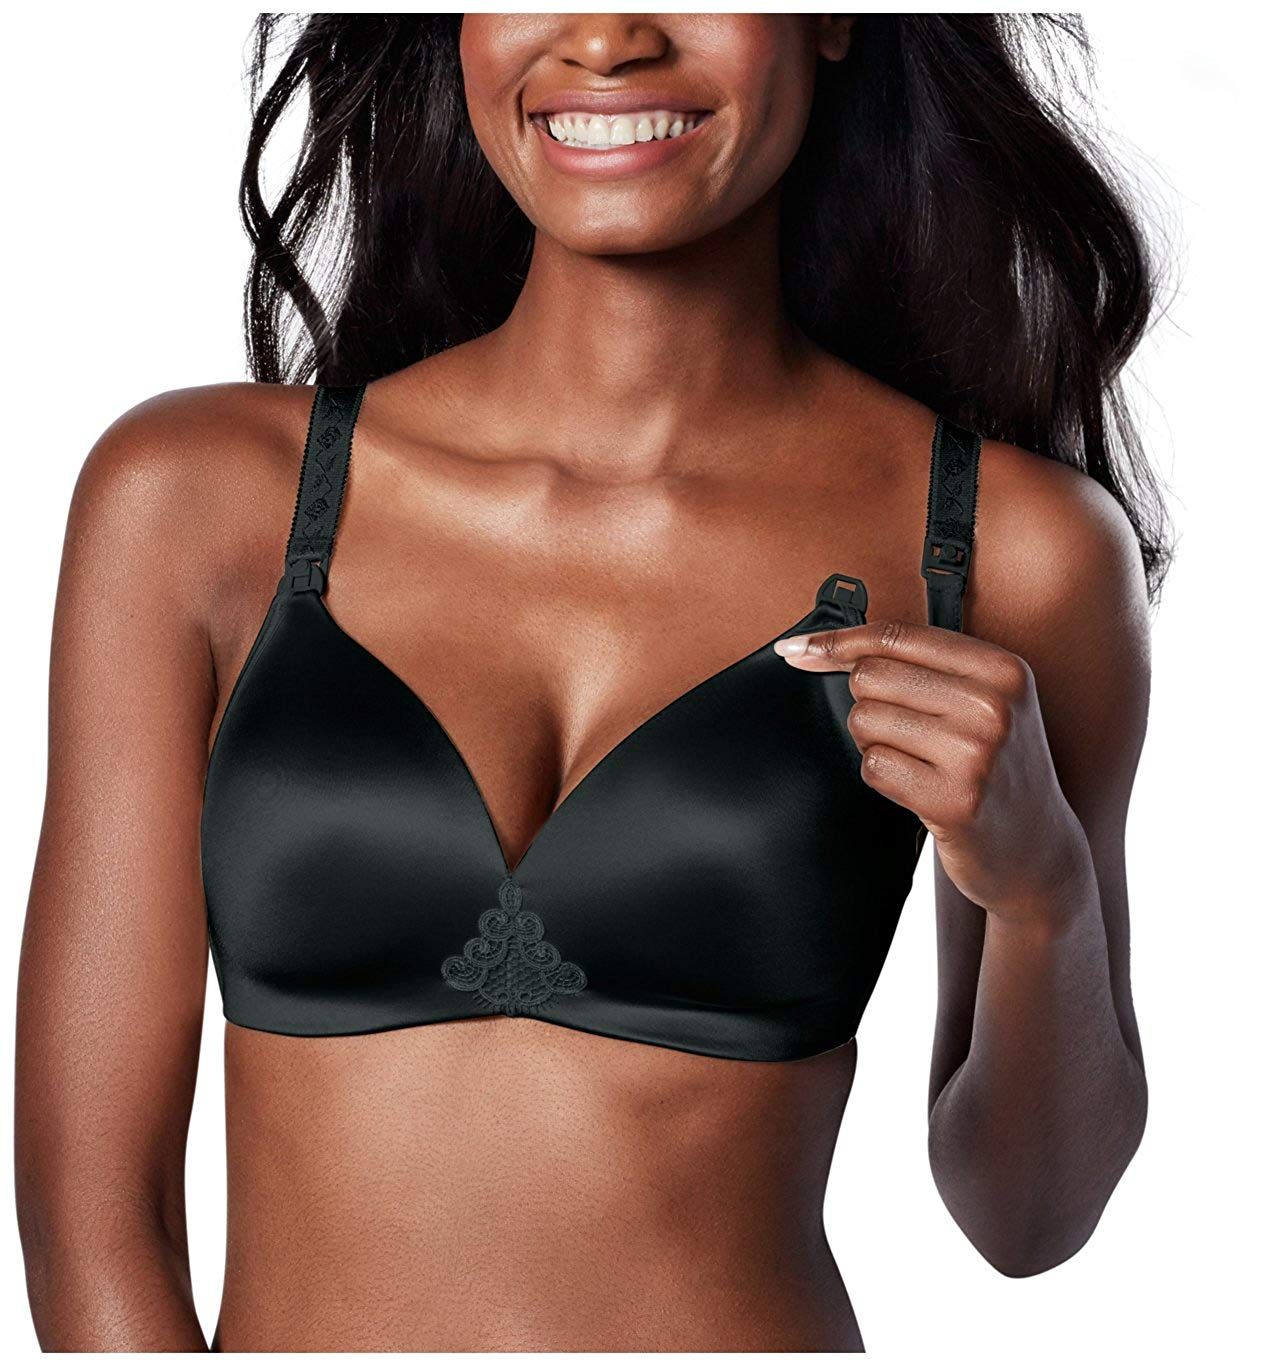 b924b21efd Get Quotations · Bravado! Designs Women s Bliss Nursing Bra